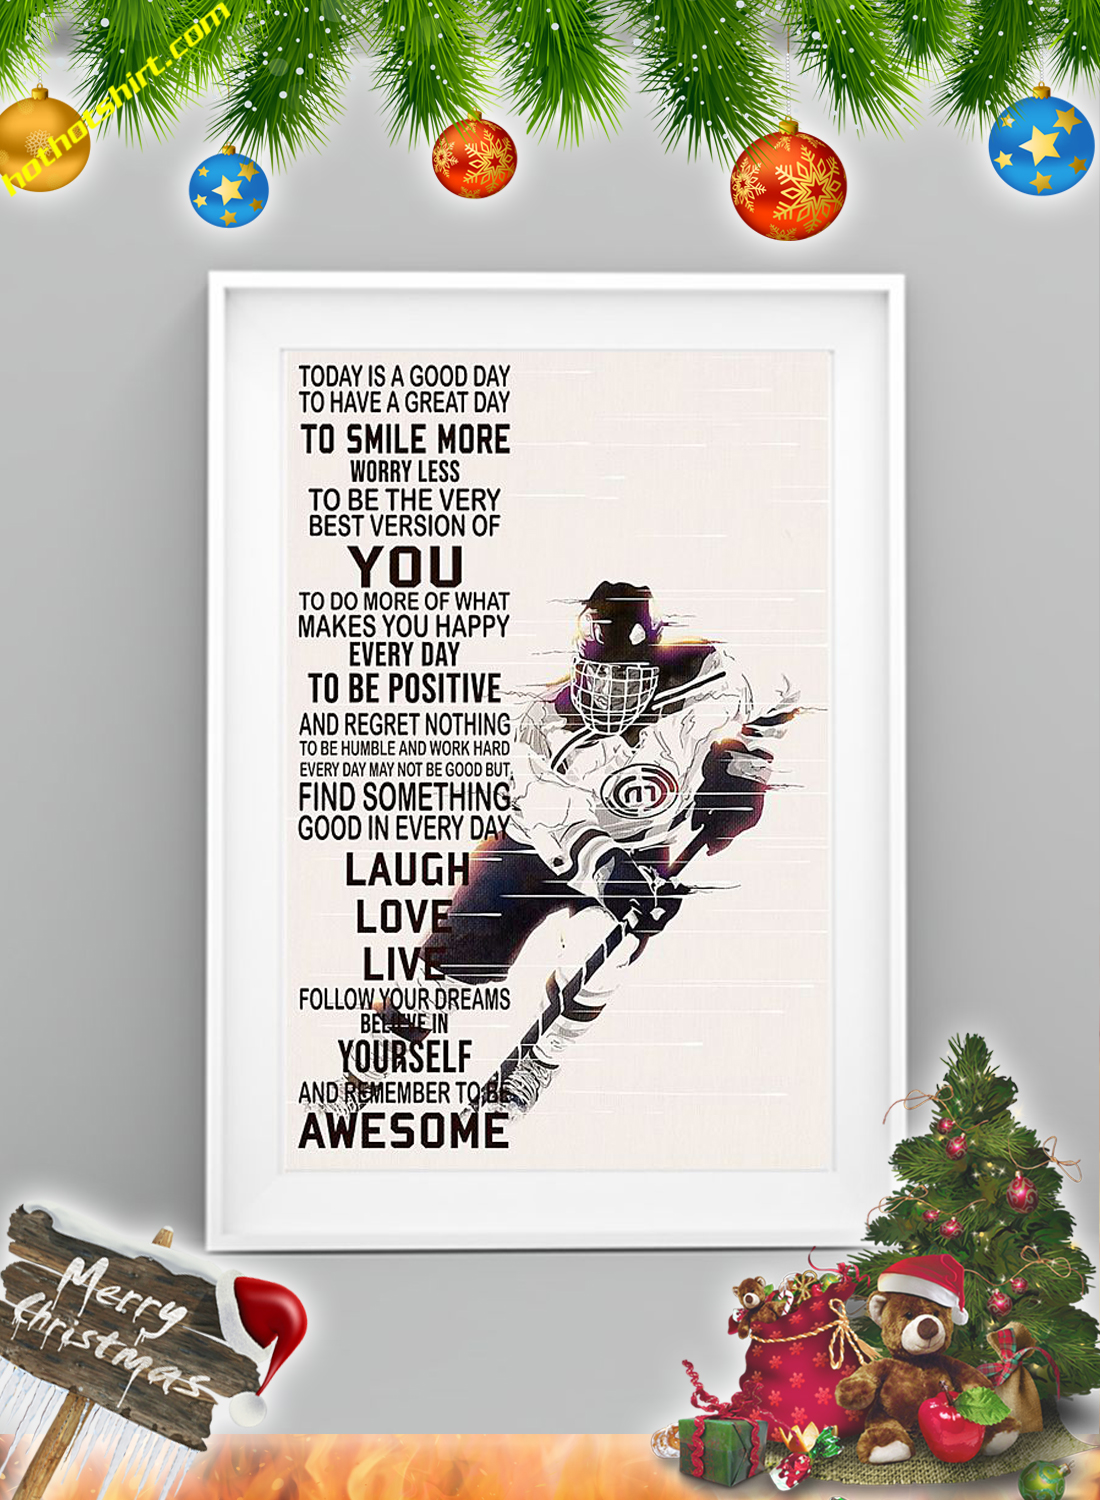 Hockey Today is a good day poster 2